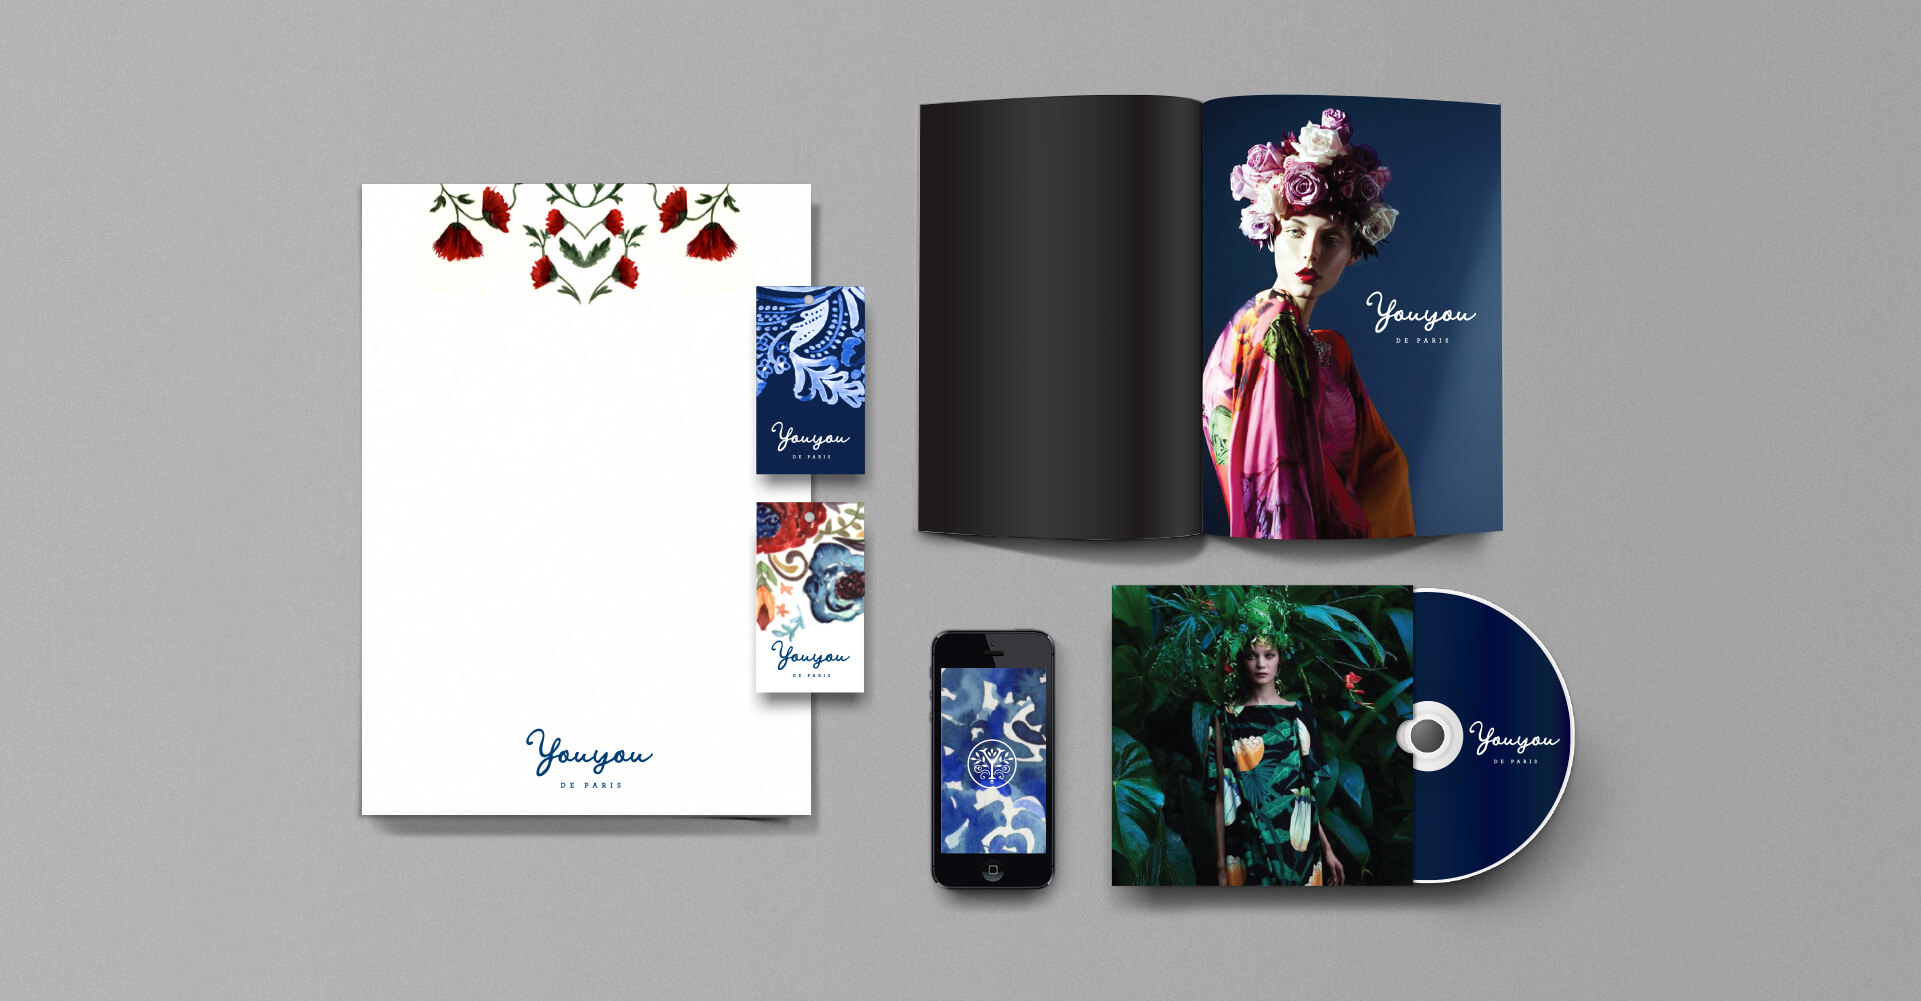 Fashion label stationery and corporate identity